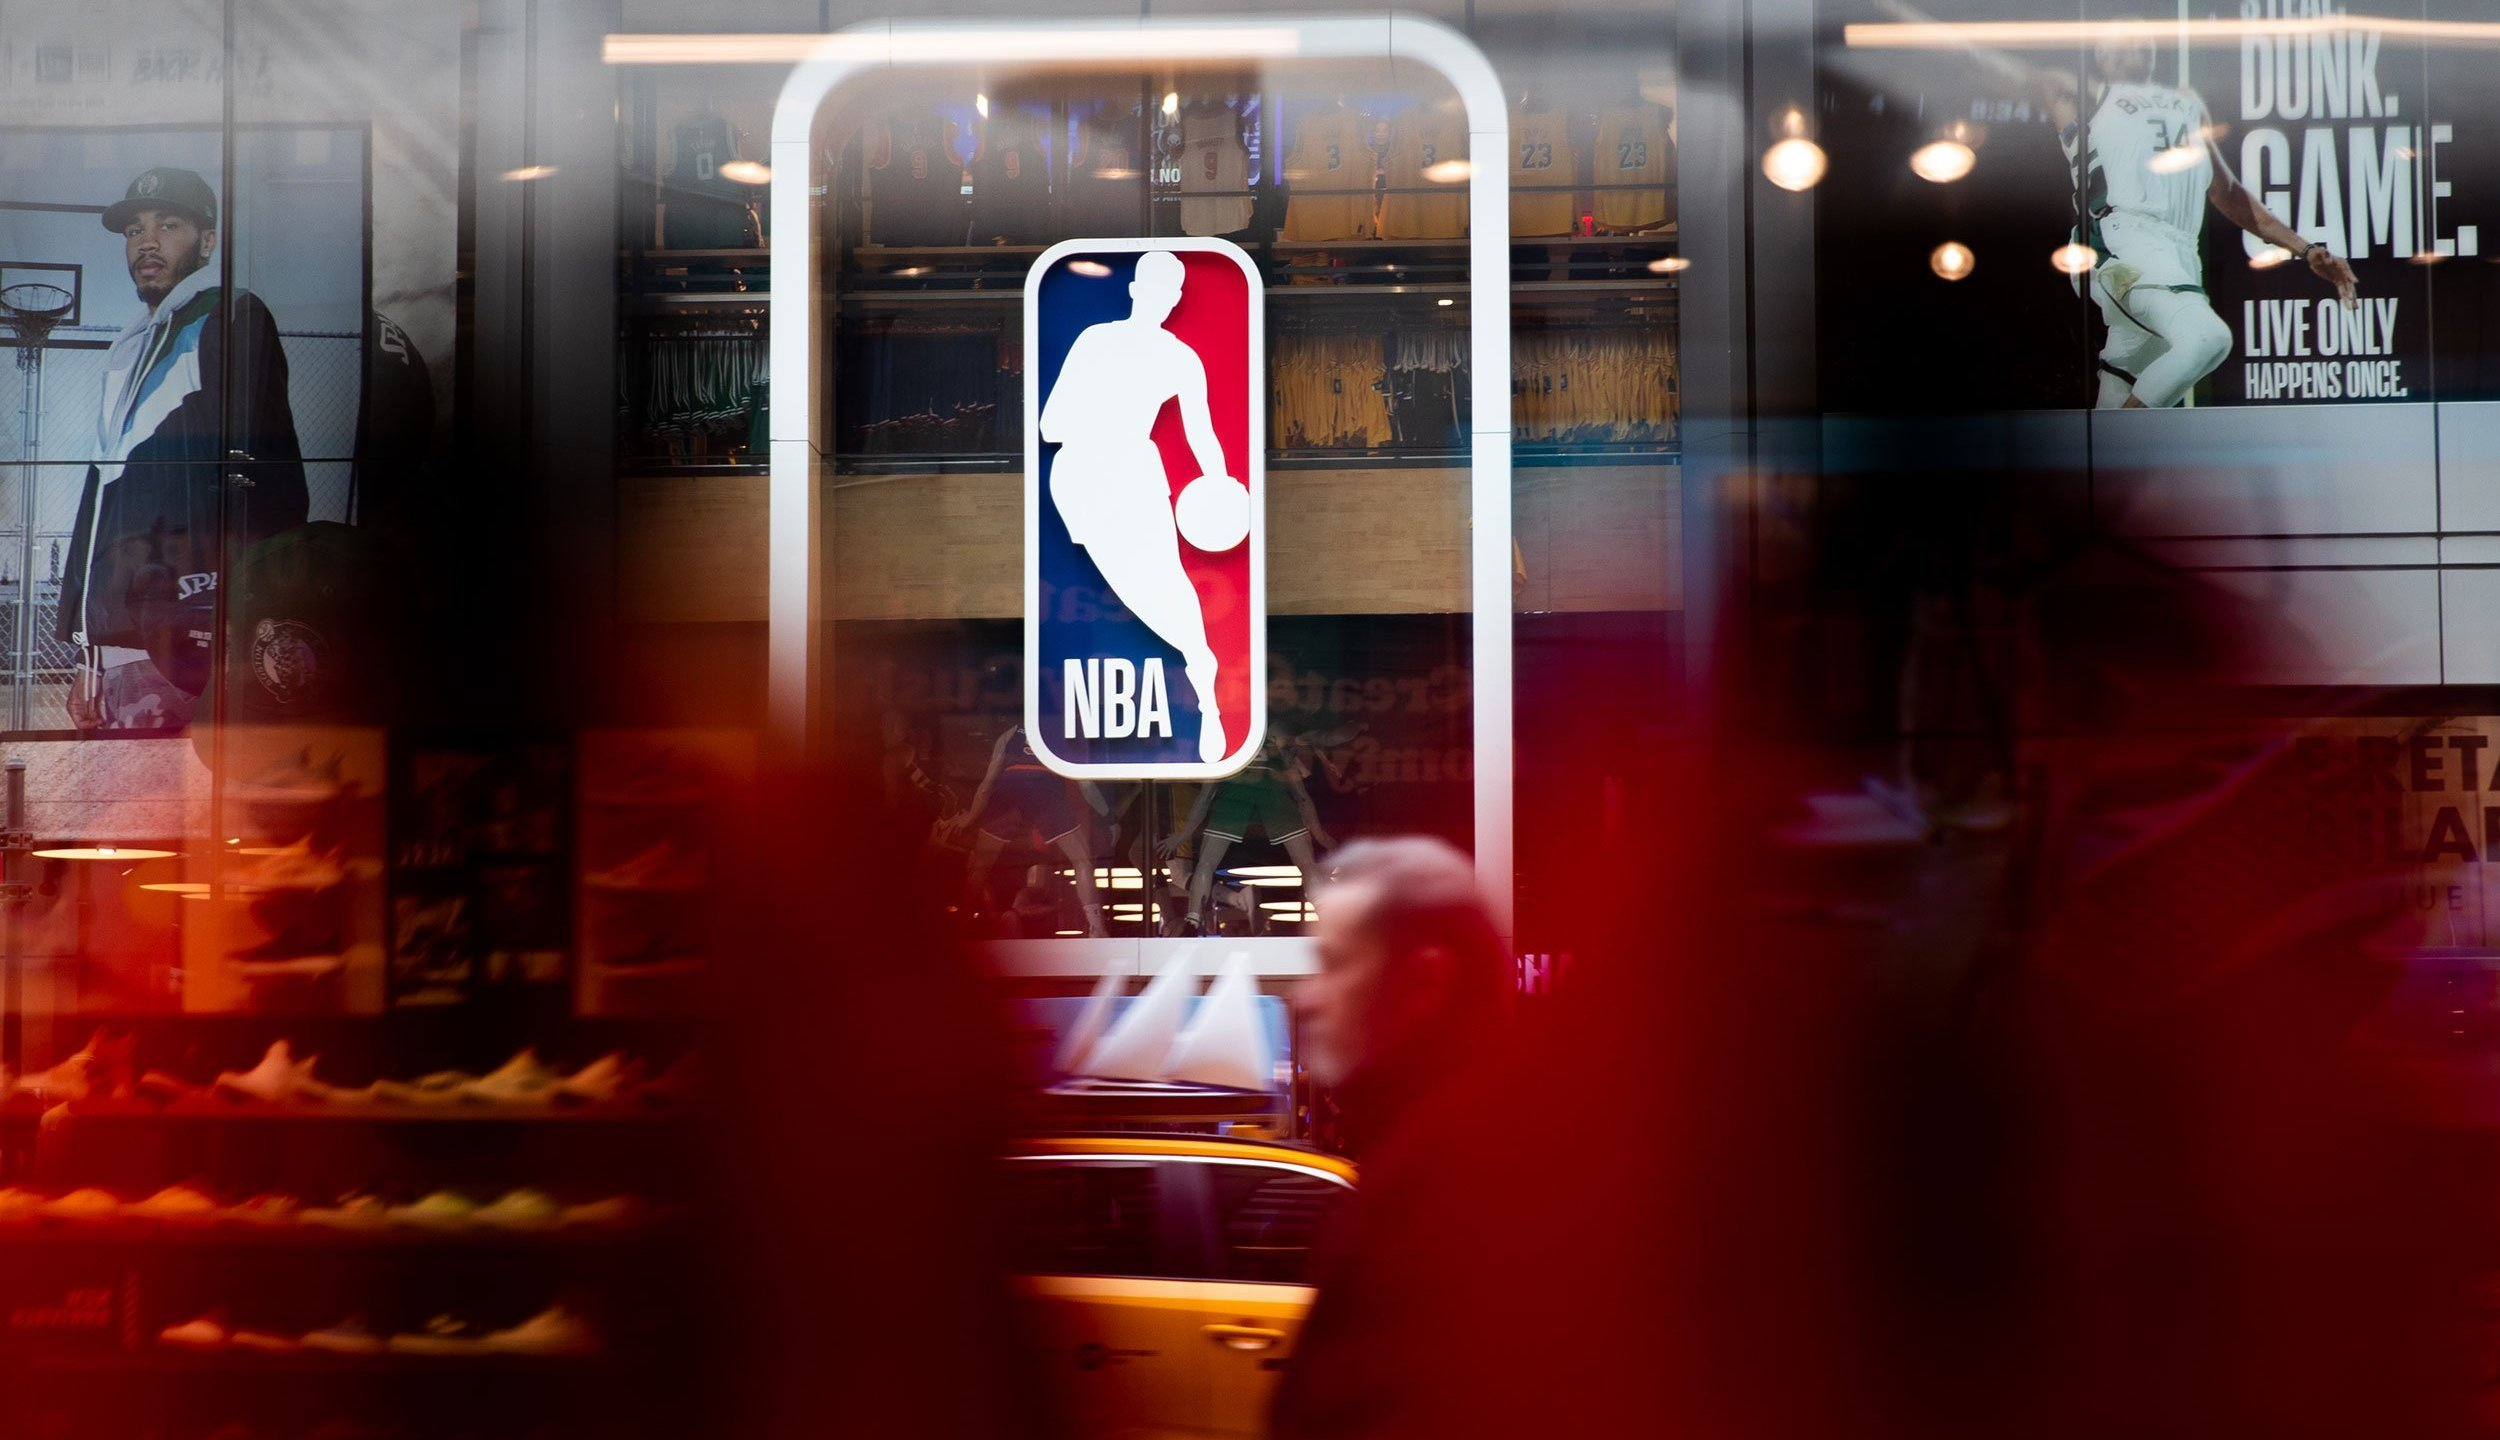 The NBA has sent a memo to its 30 teams asking them to not test every player and staff member for coronavirus, a source with direct knowledge of the memo said. (Jenah Moon/Getty Images)